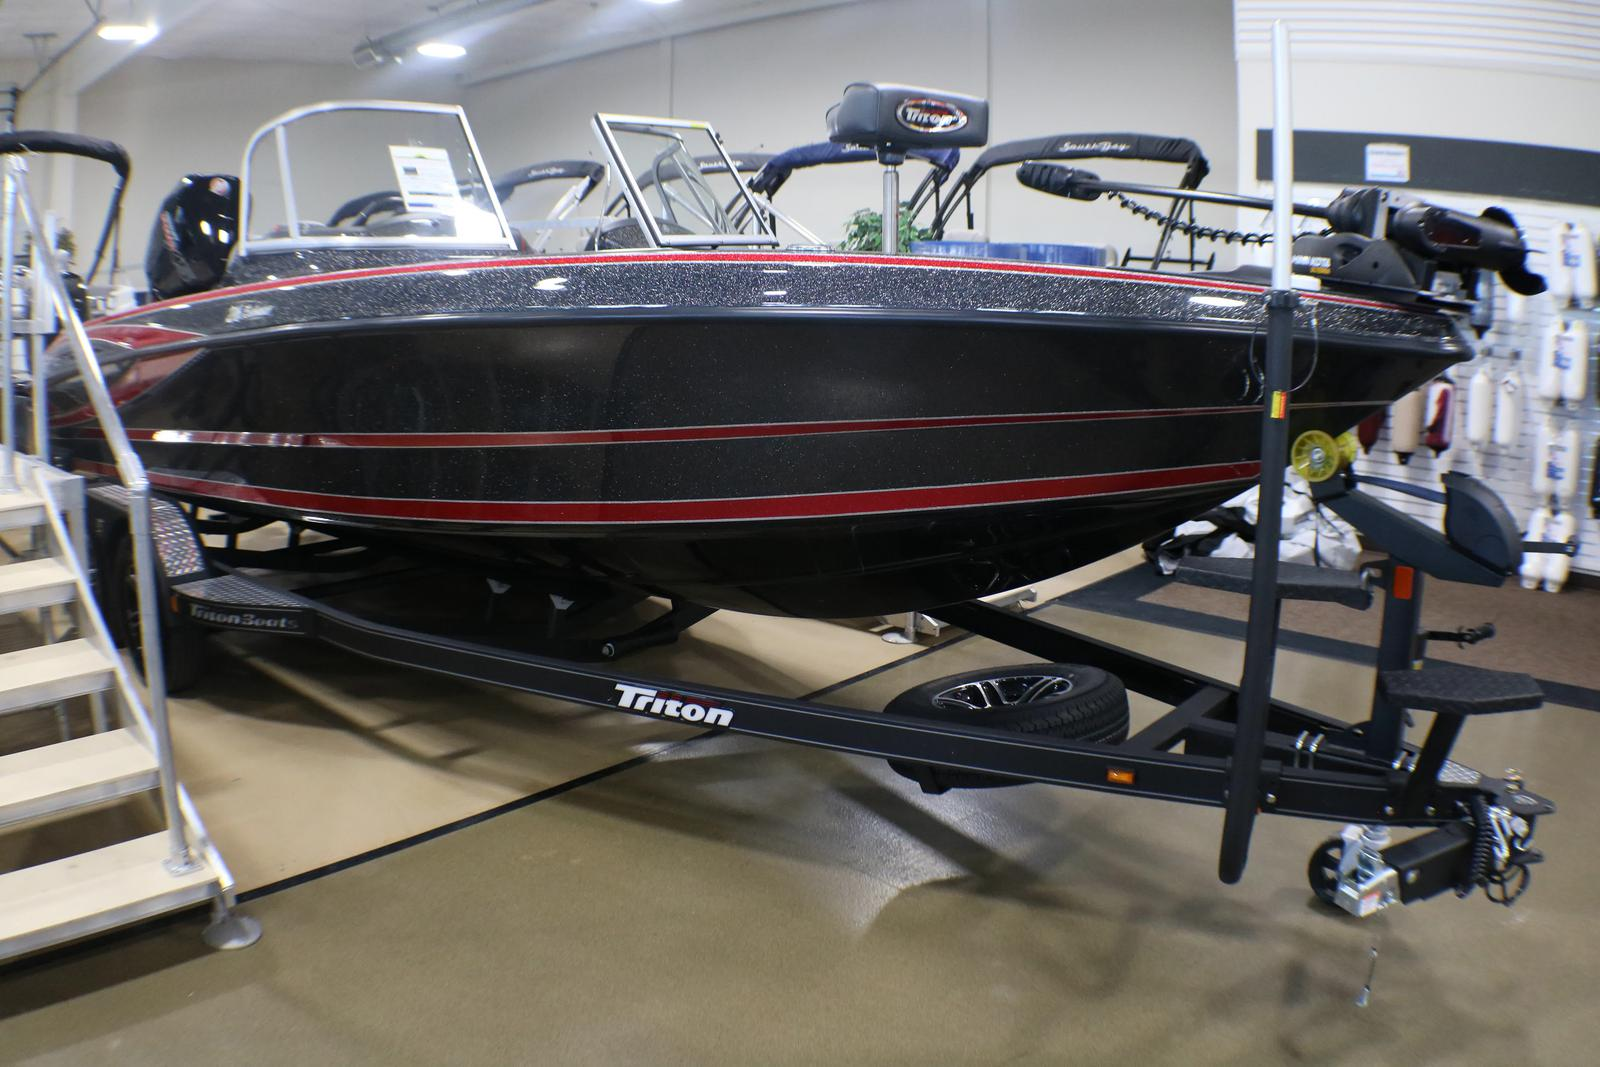 Inventory from Triton Boats, Crestliner and Starcraft River